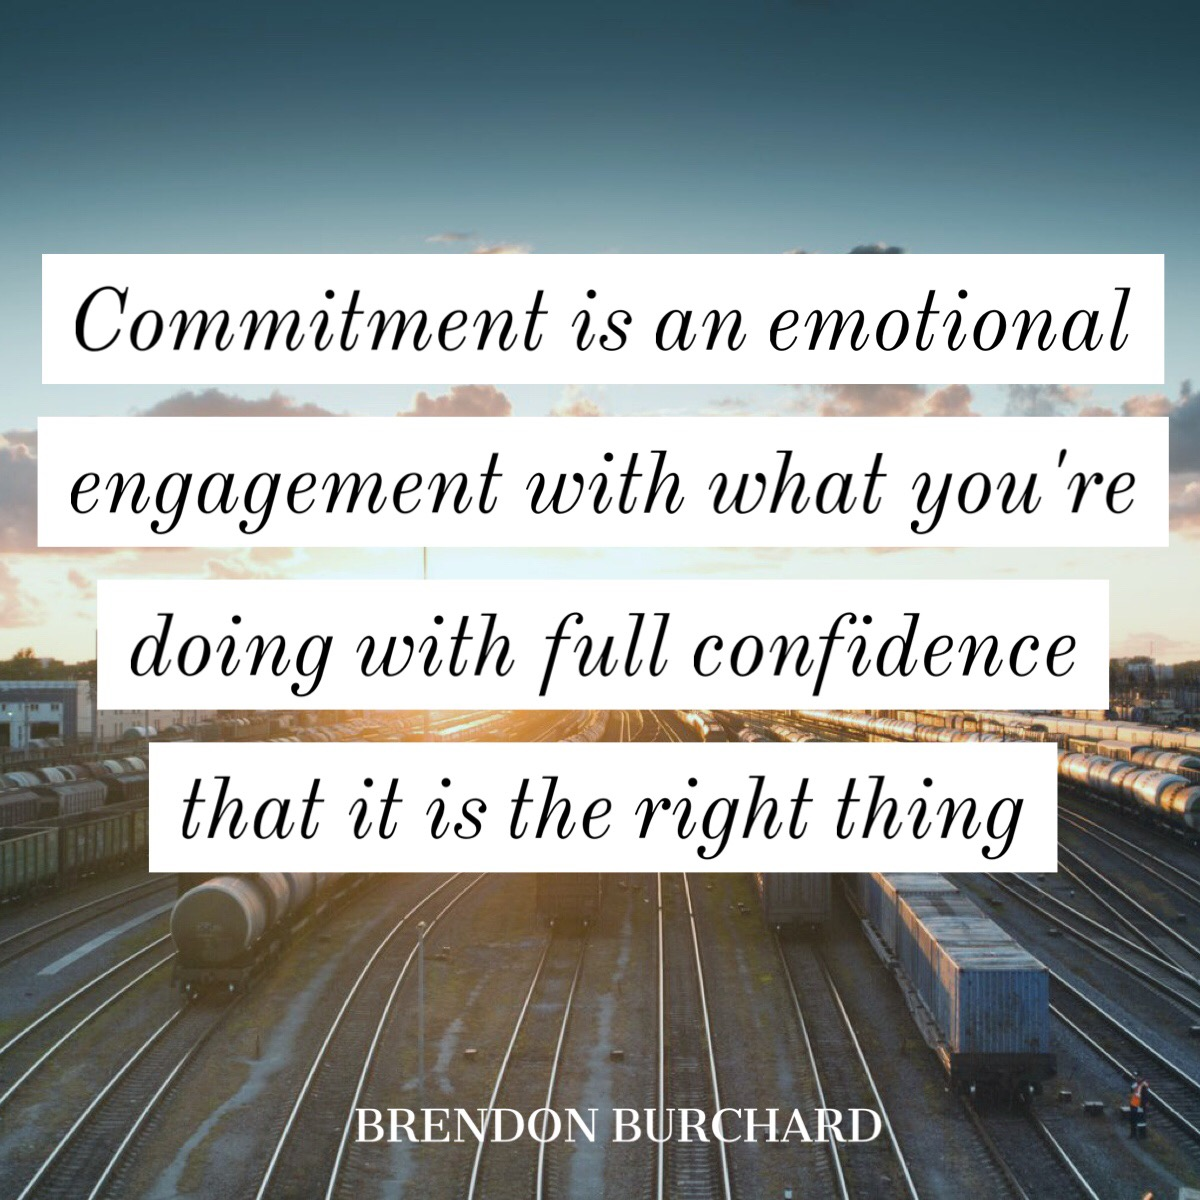 commitment, motivation manifesto, brendon burchard